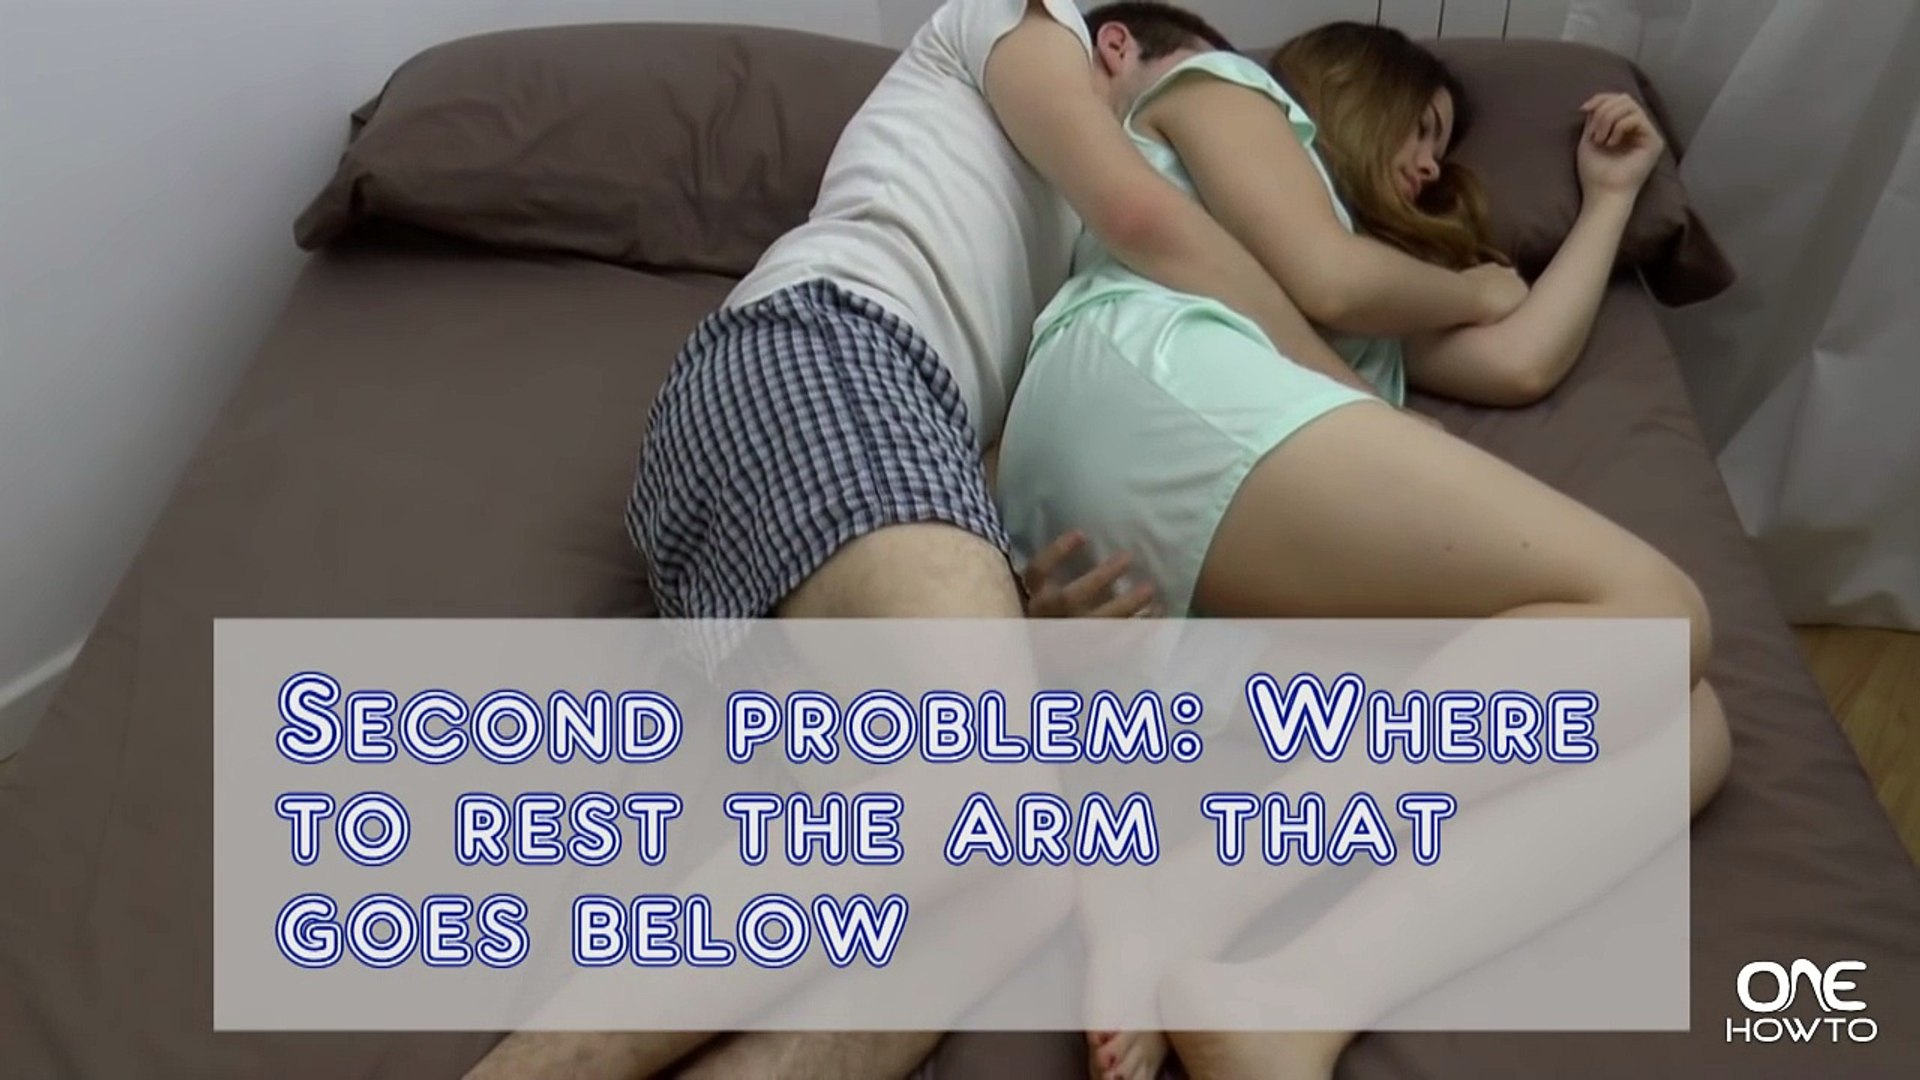 Is someone what spooning Do Guys